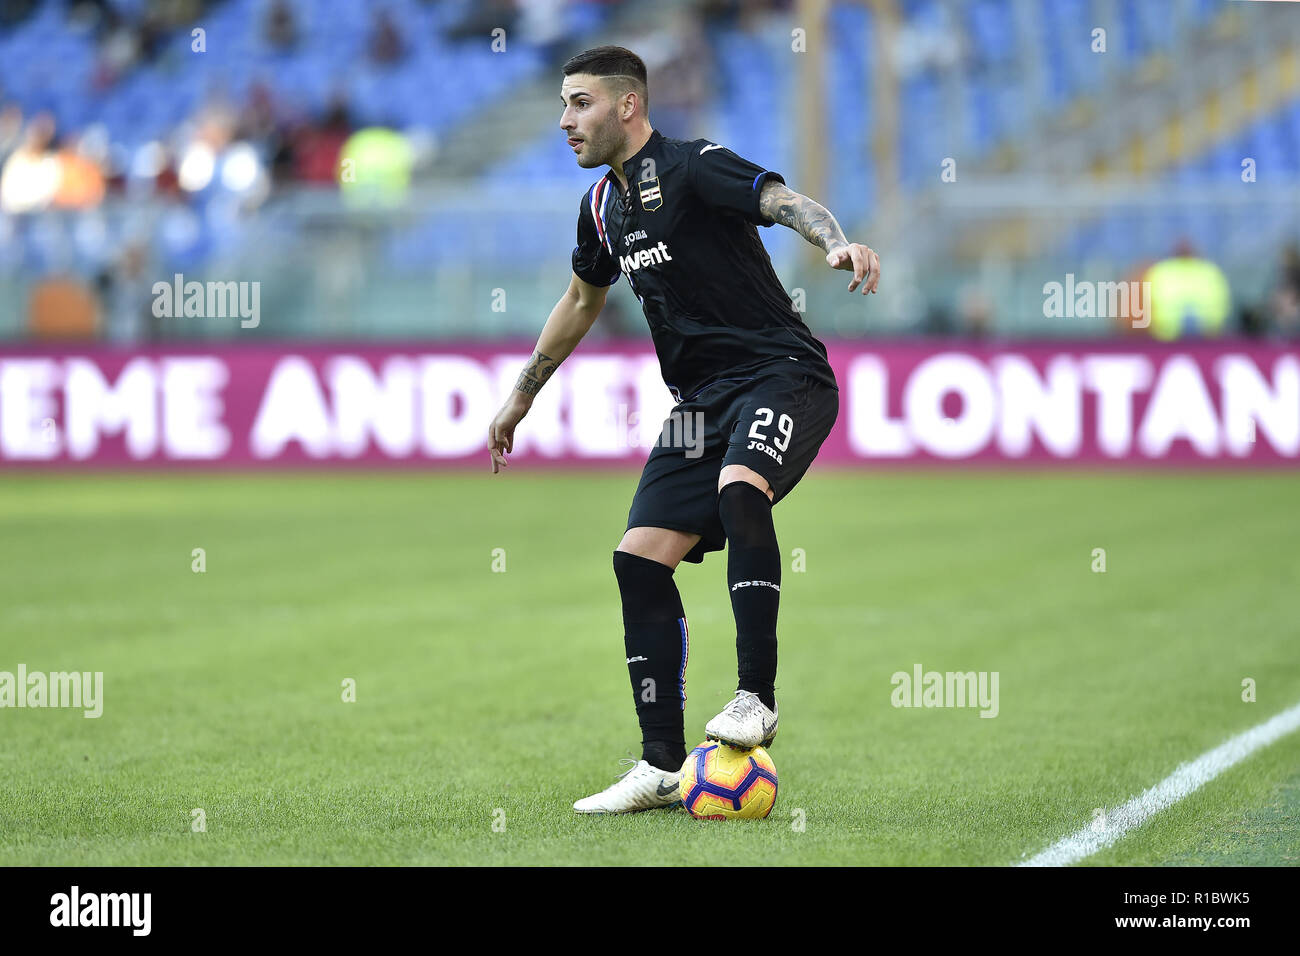 Rome, Italy. 11th Nov 2018. Nicola Murru of Sampdoria during the Serie A match between Roma and Sampdoria at Stadio Olimpico, Rome, Italy on 11 November 2018. Credit: Giuseppe Maffia/Alamy Live News Stock Photo